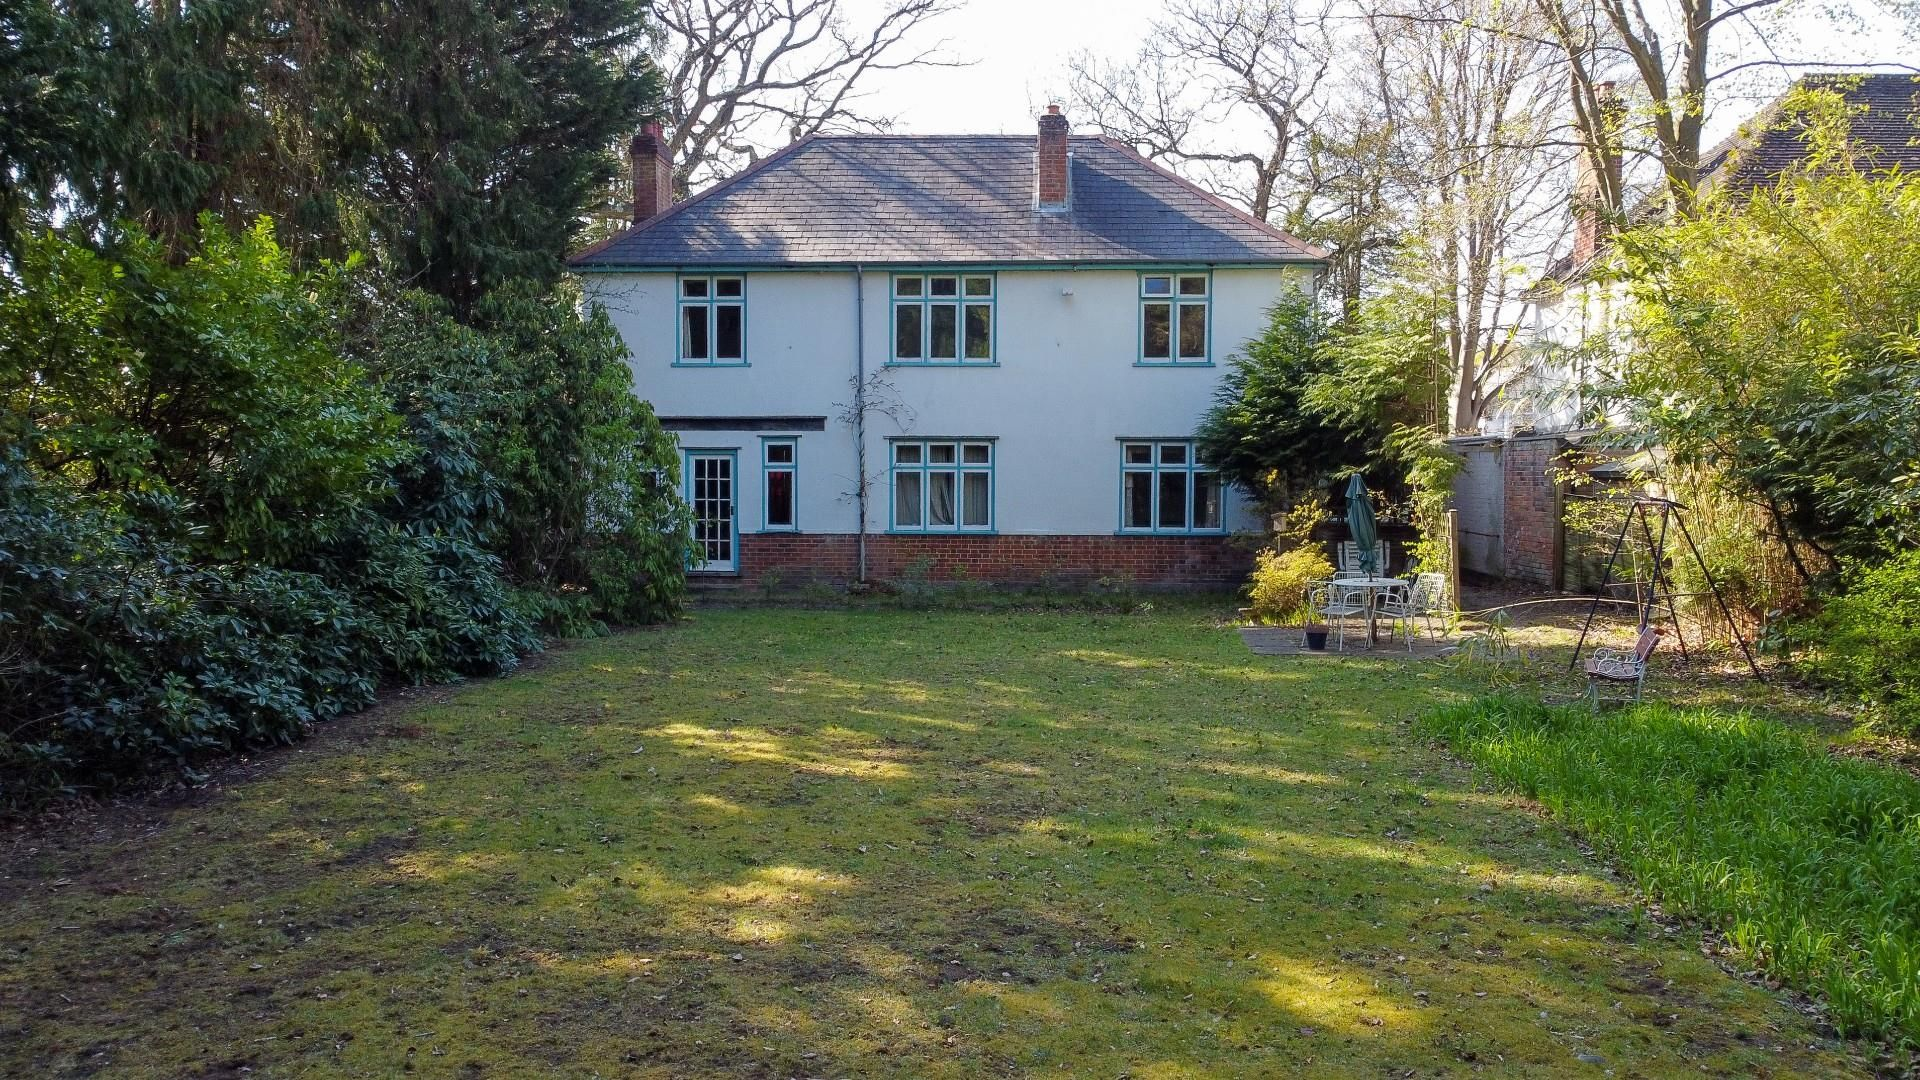 4 bed house for sale 1